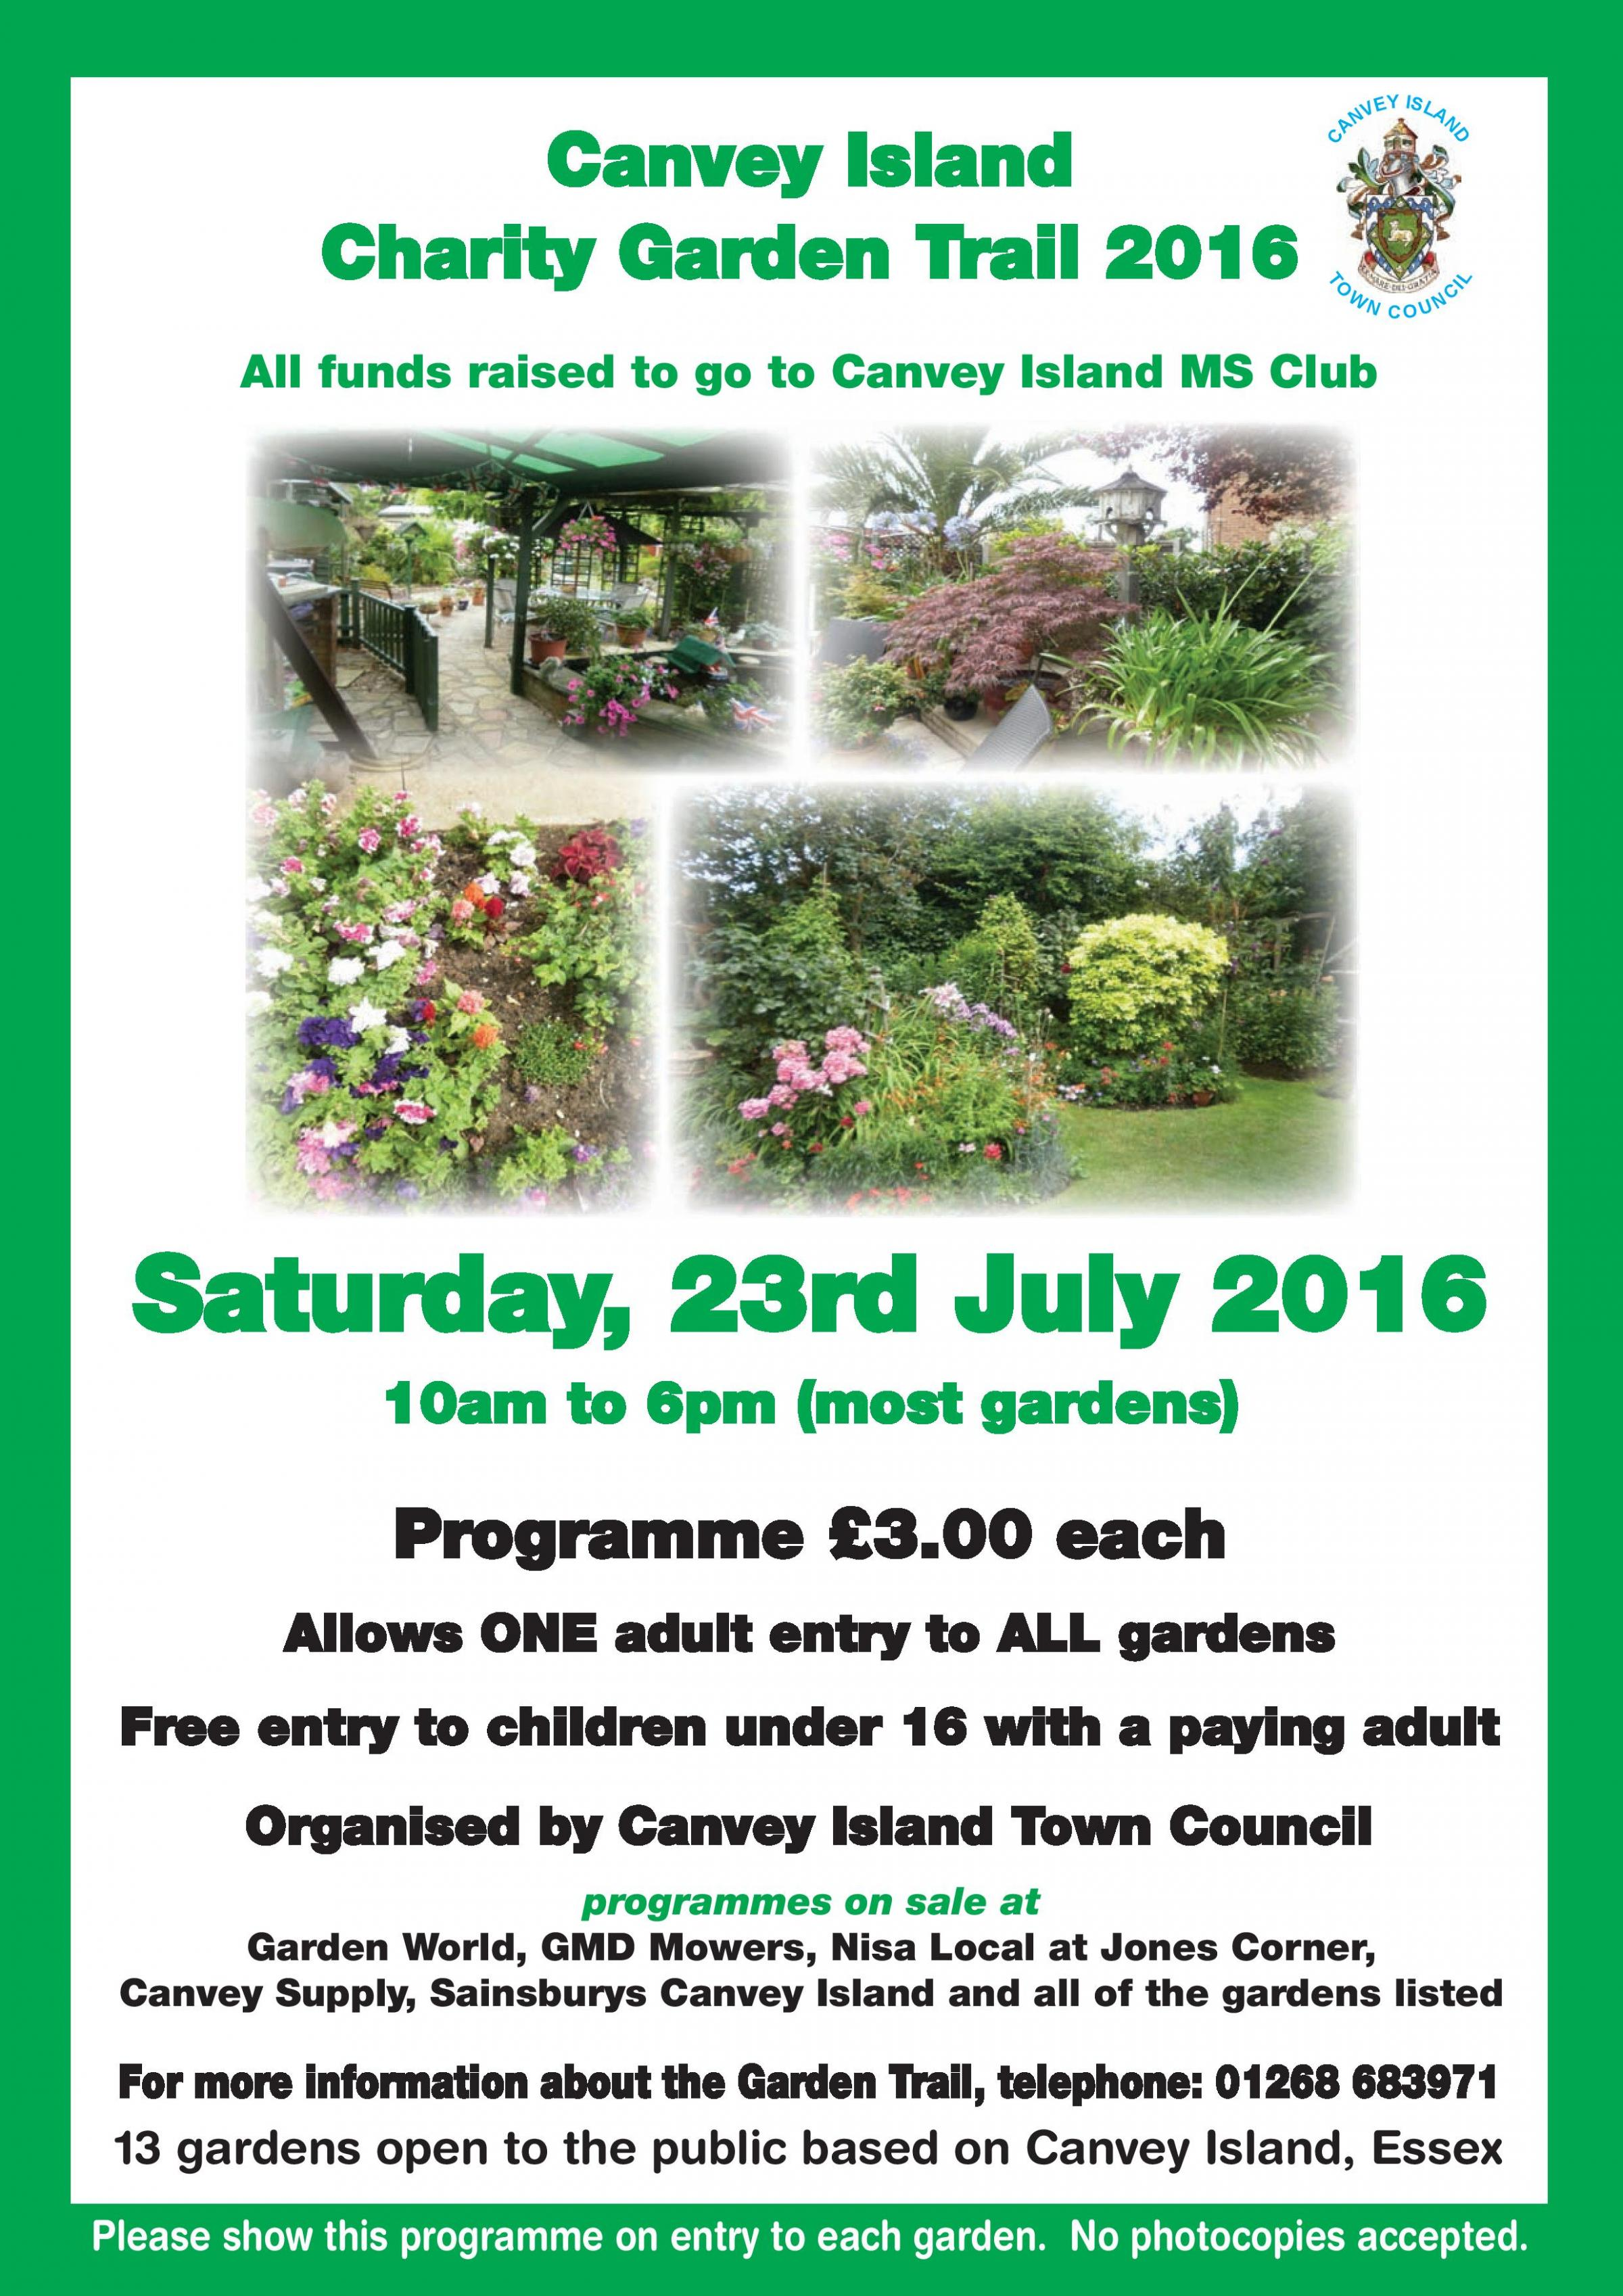 Canvey Island Charity Garden Trail